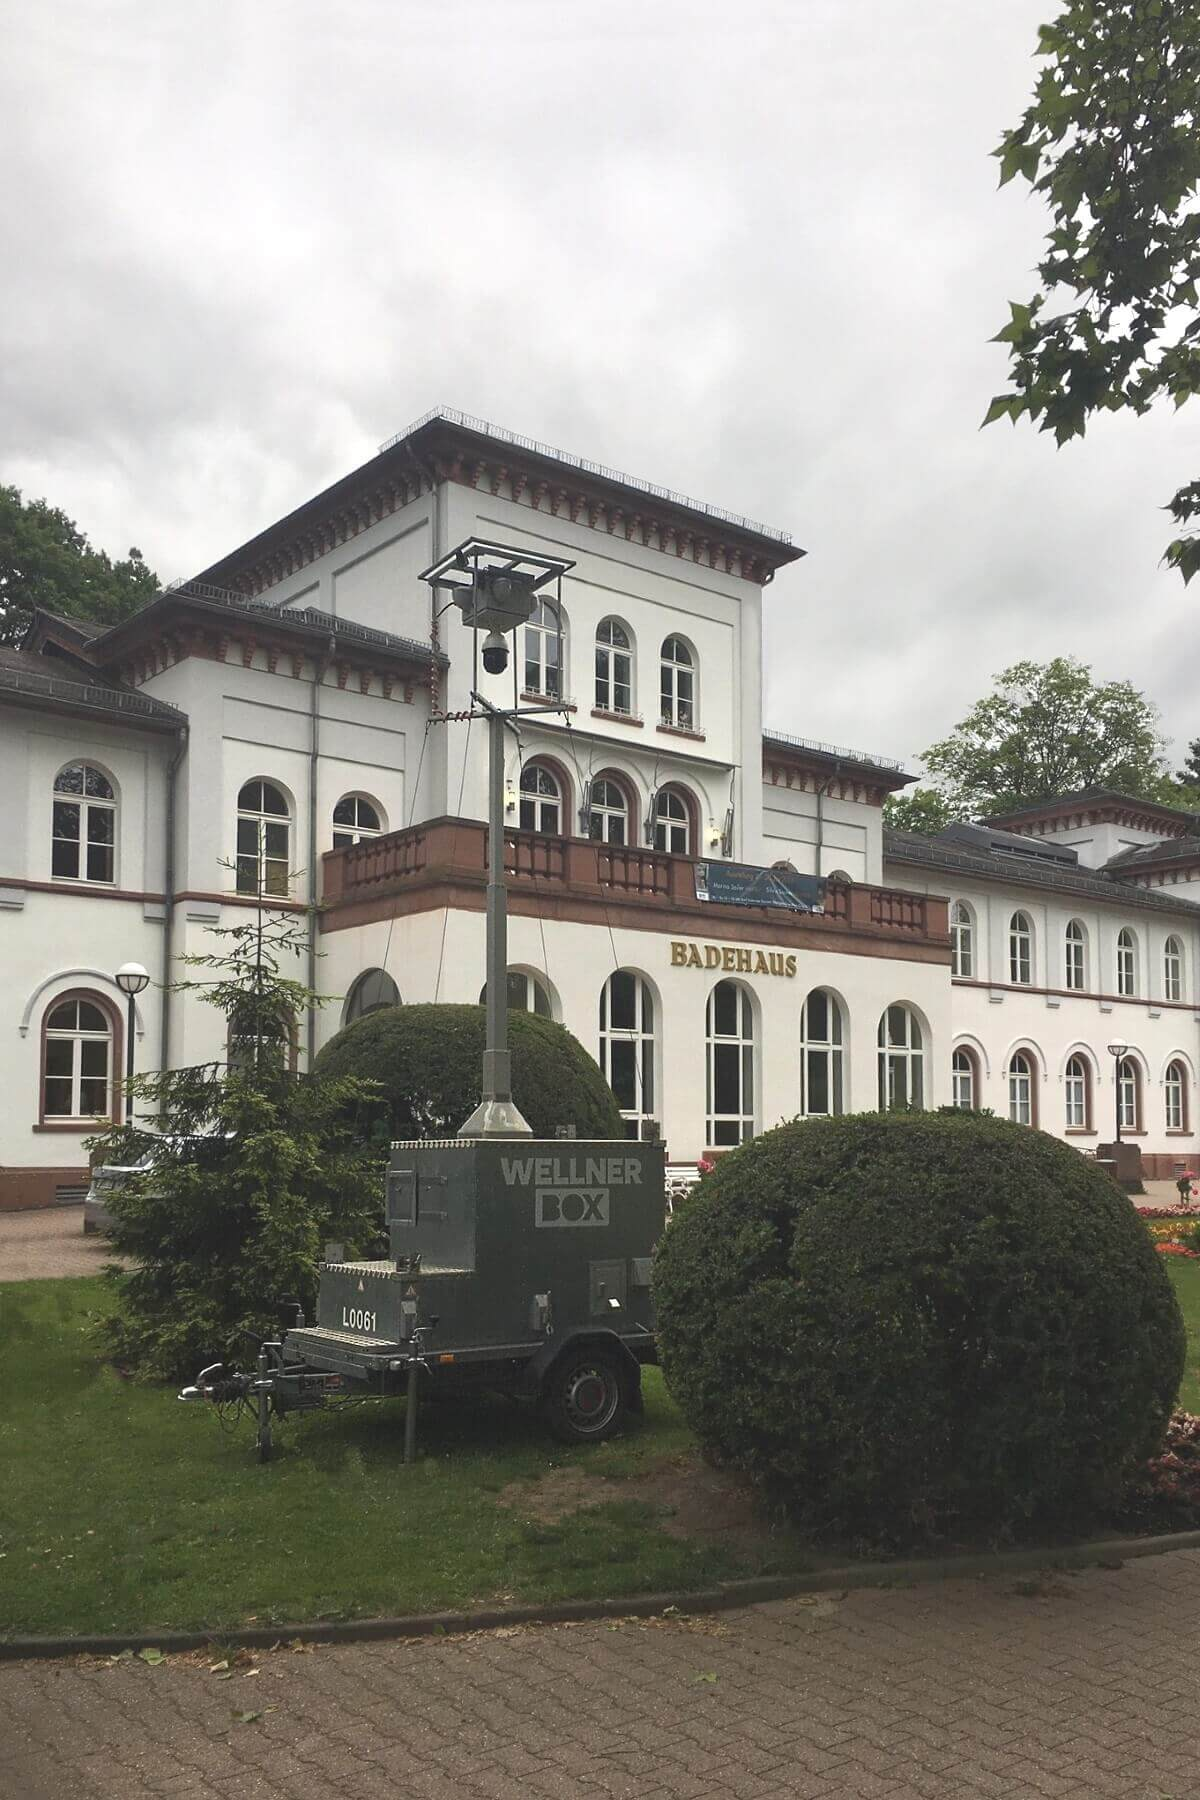 A WellnerBOX mobile in front of the historic spa and bath house